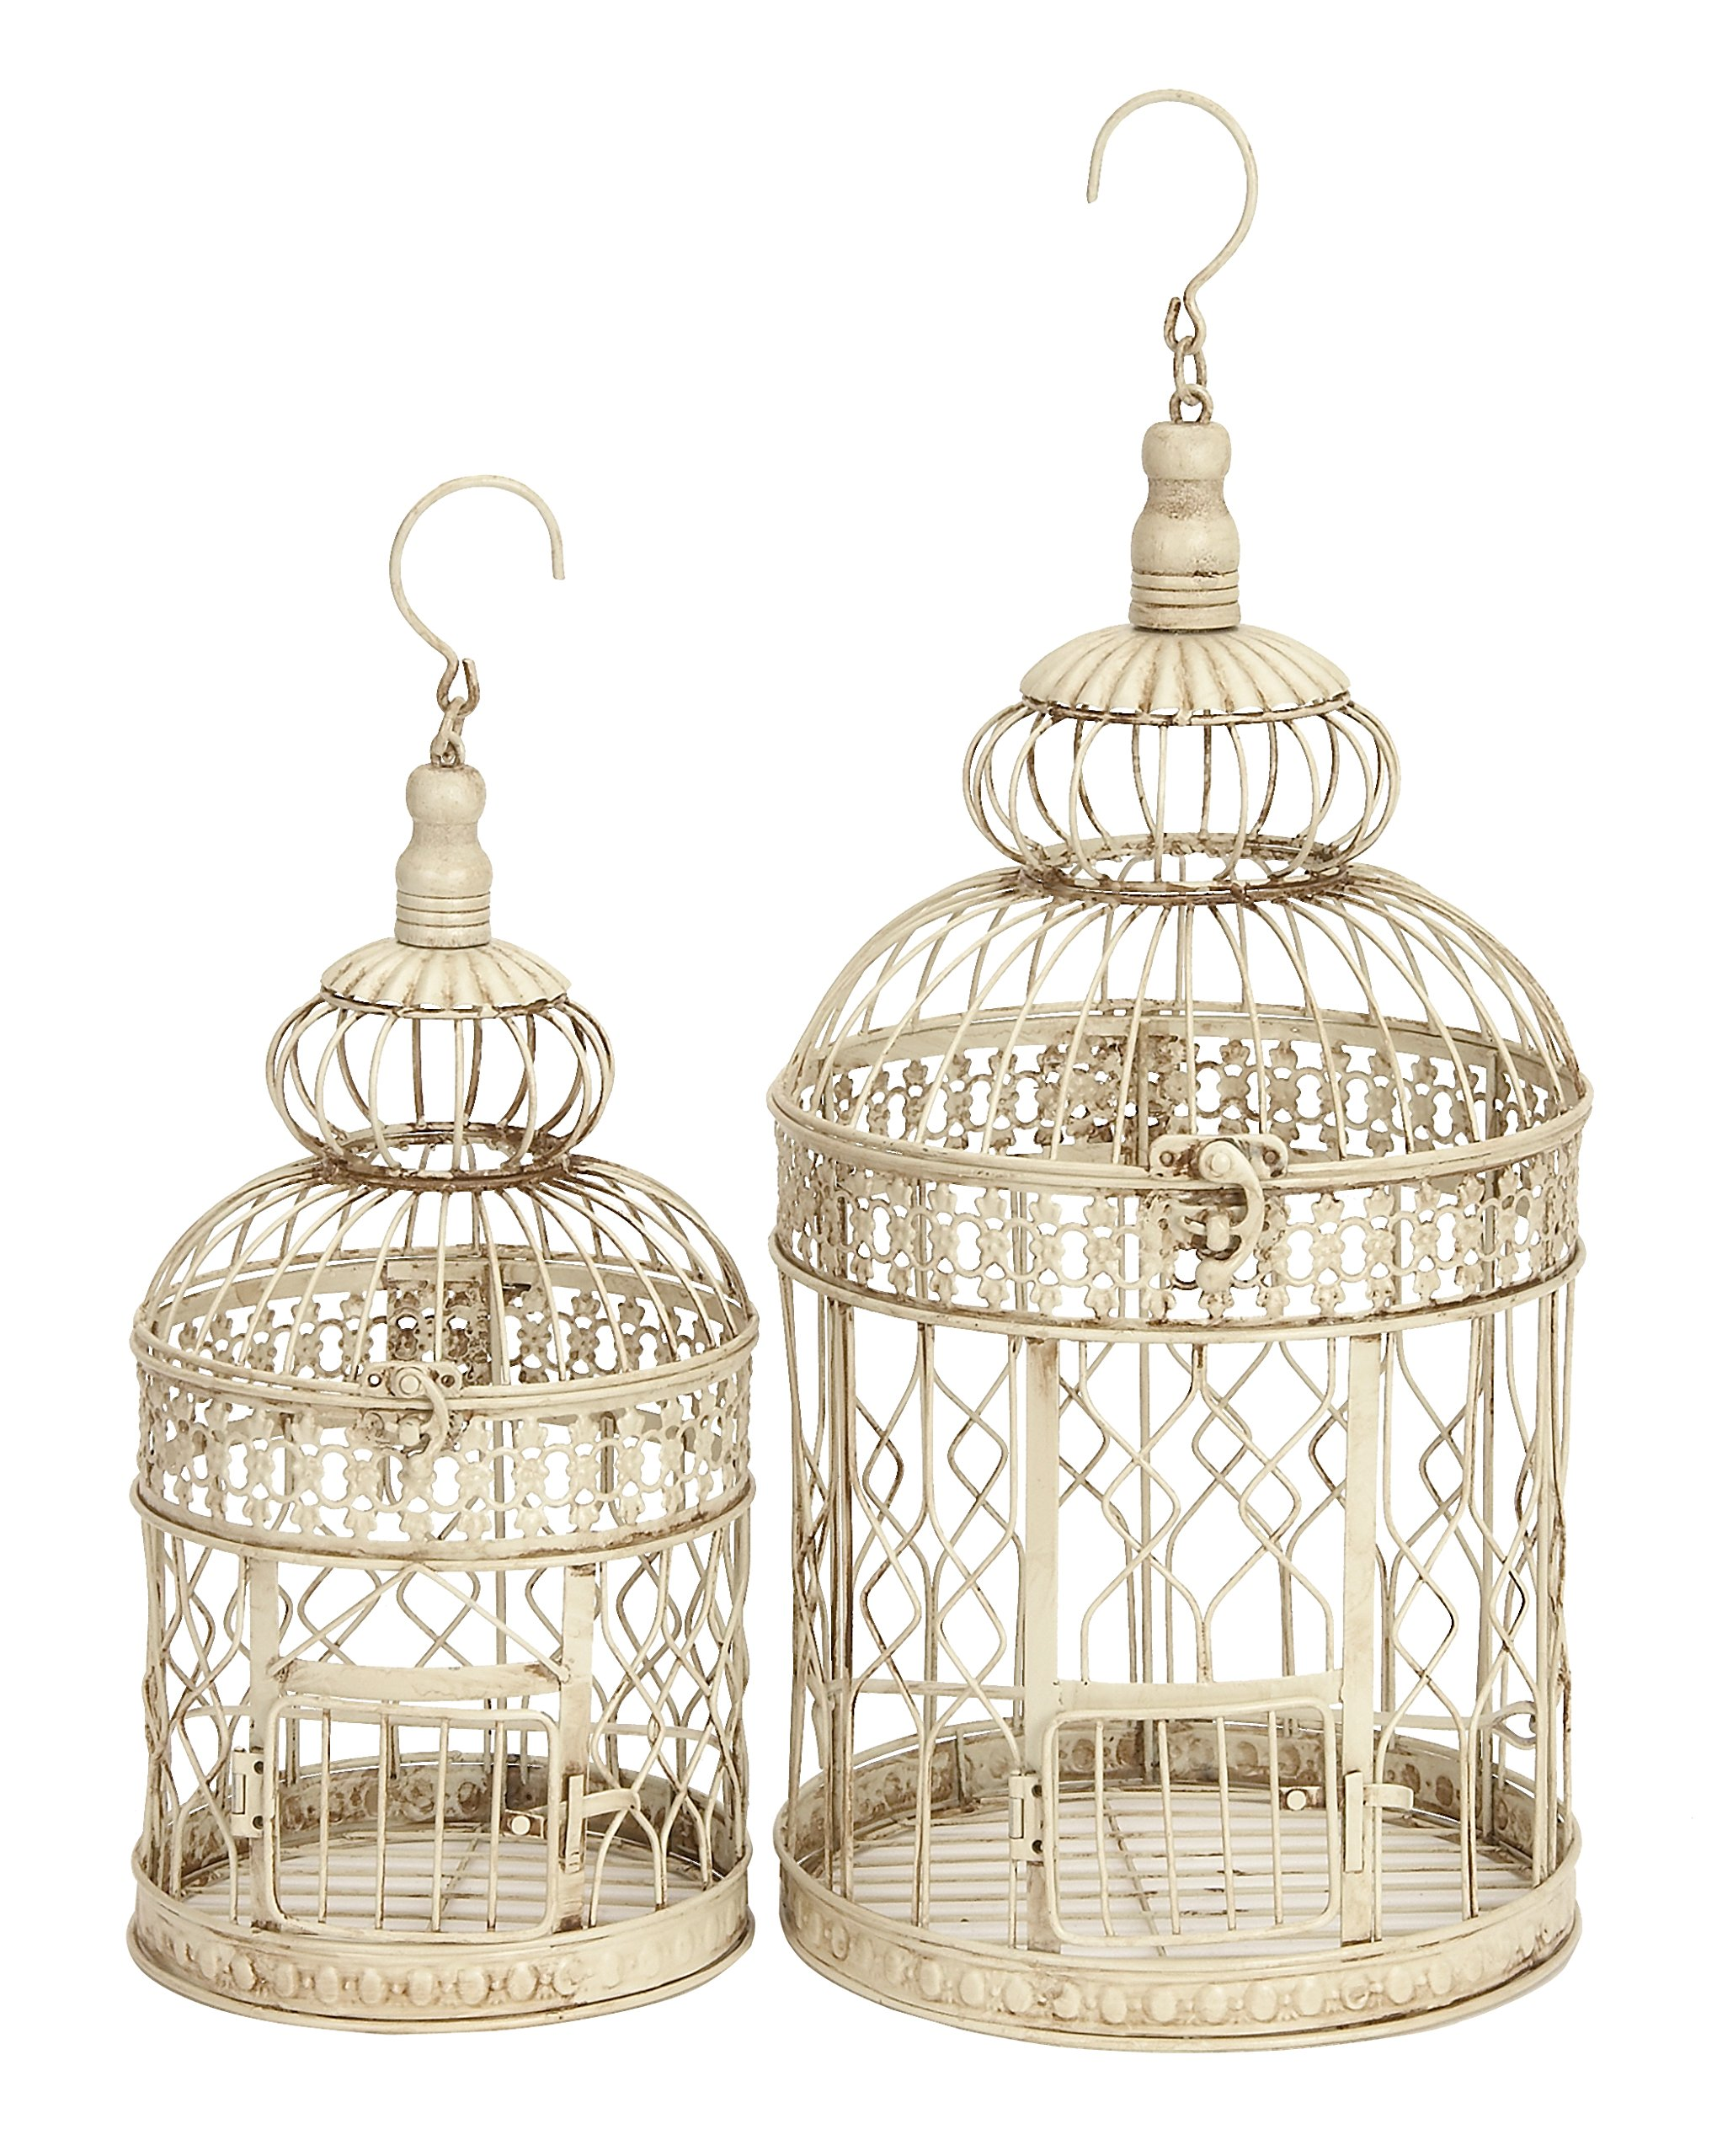 Set of 2 Metal Wall Hanging Bird Cage decor canary parrot decorative outdoor